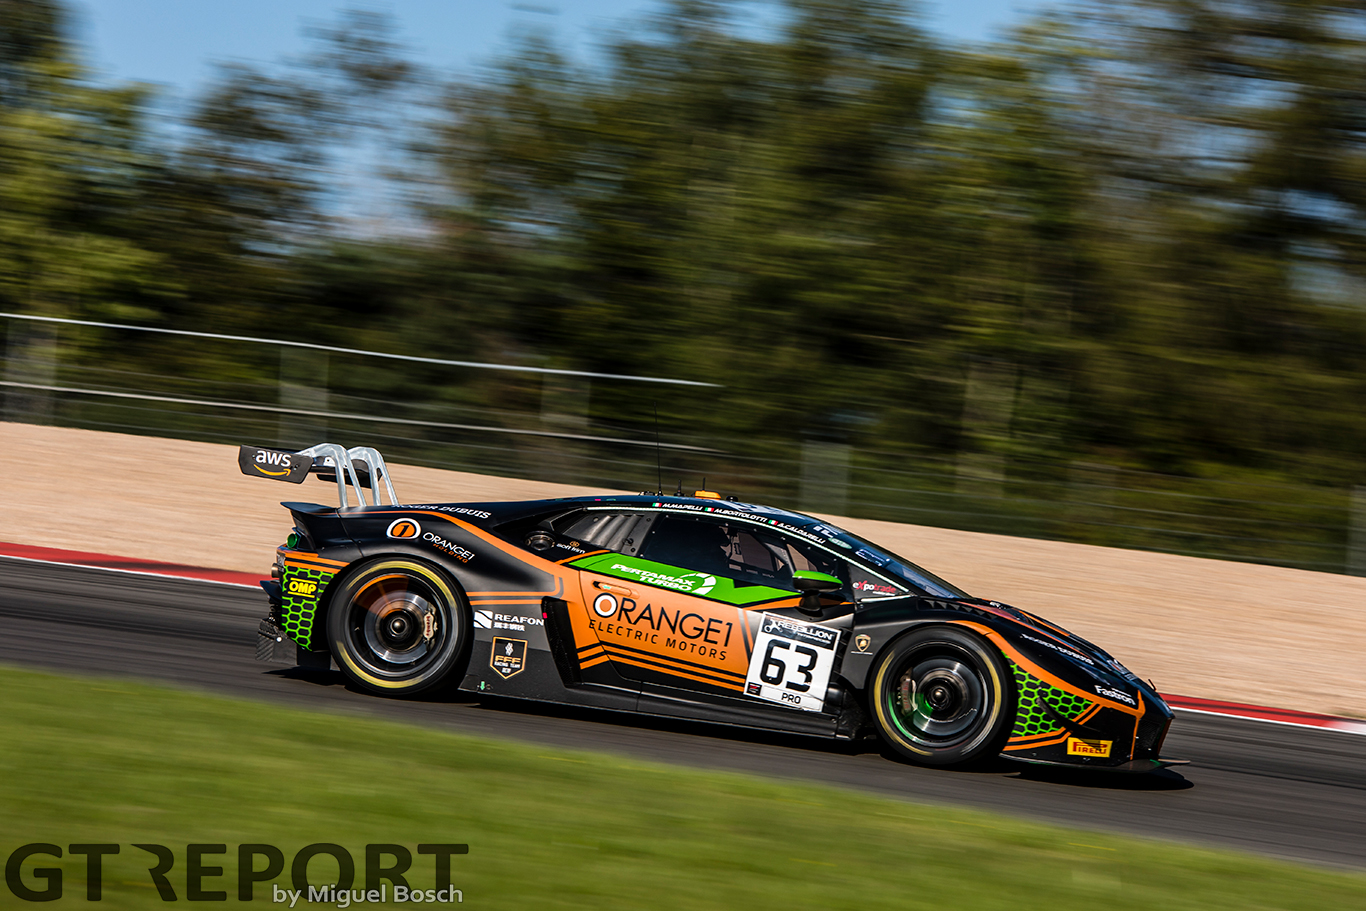 GT World Challenge Nürburgring qualifying report: FFF Racing continues qualifying success with another pole